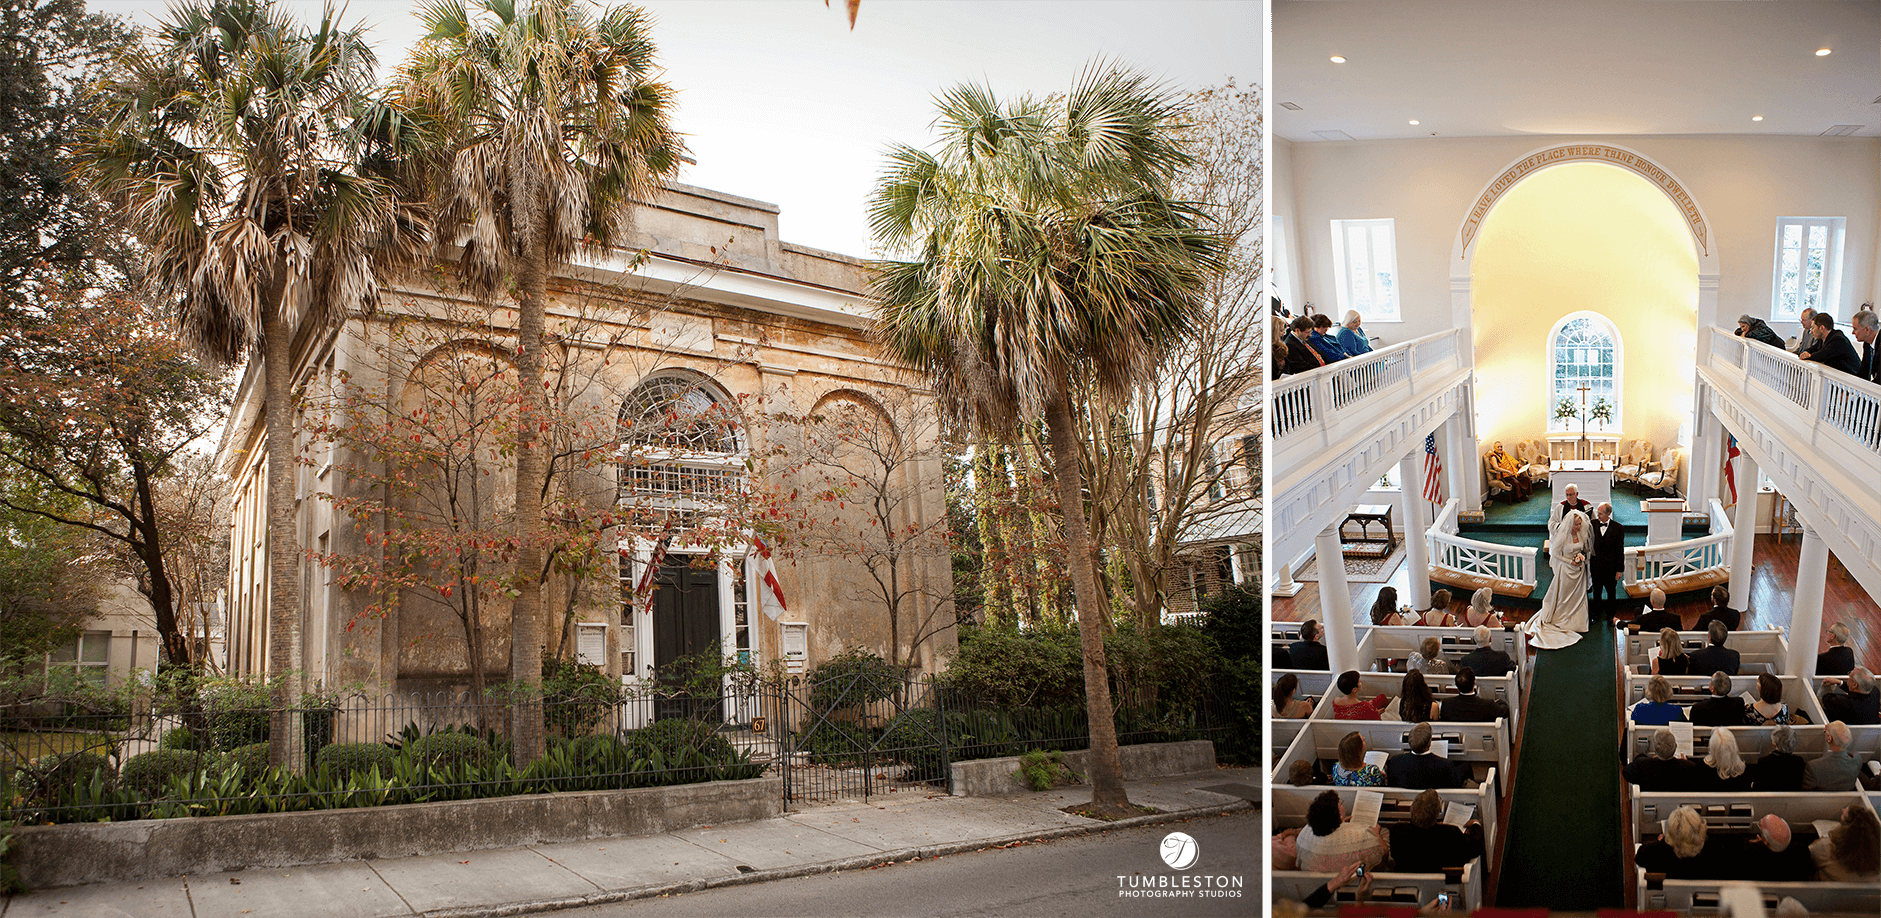 Our favorite wedding chapels best wedding venues in charleston sc st stephens chapel charleston junglespirit